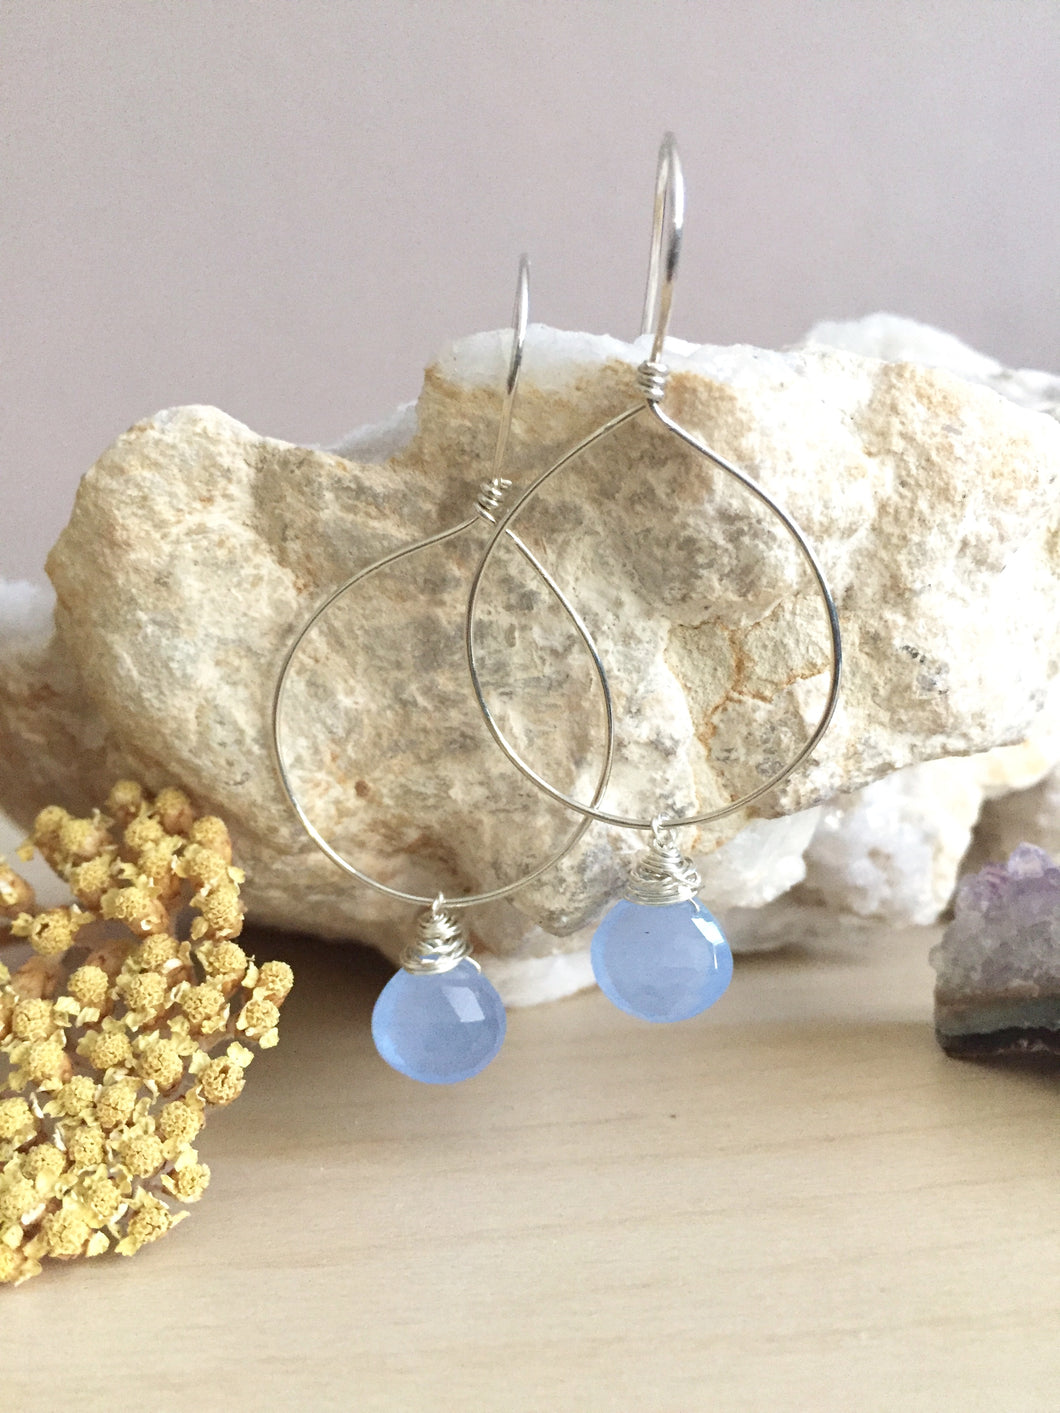 Handmade hoop earrings with a light blue gemstone drop